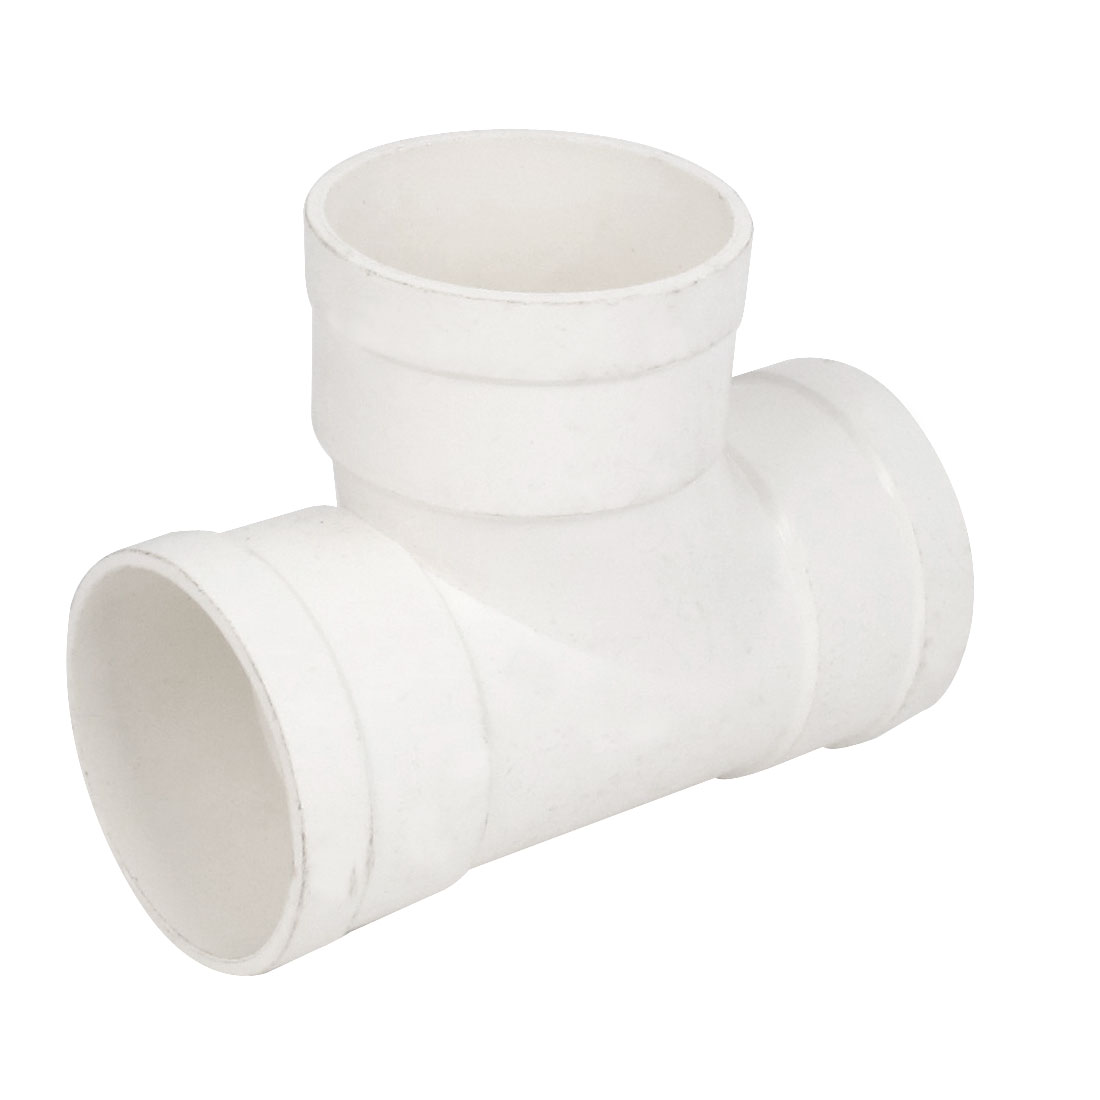 75mm Inner Dia PVC T Type 3 Way Water Pipe Hose Joint Adapter Connector White